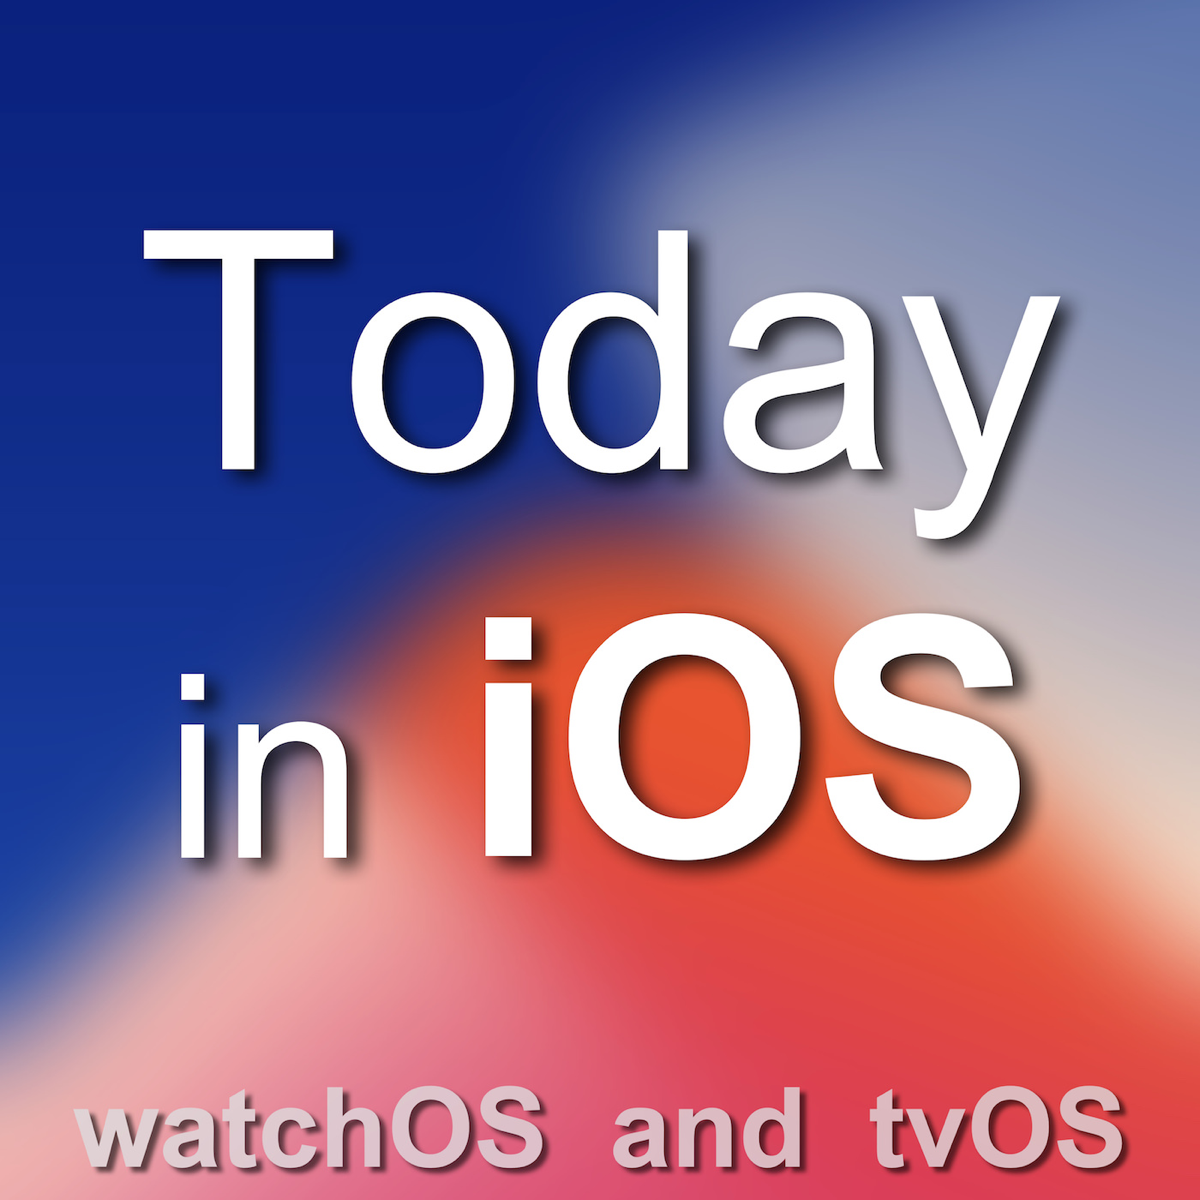 Best episodes of Today in iOS - The Unofficial iPhone, iPad, and